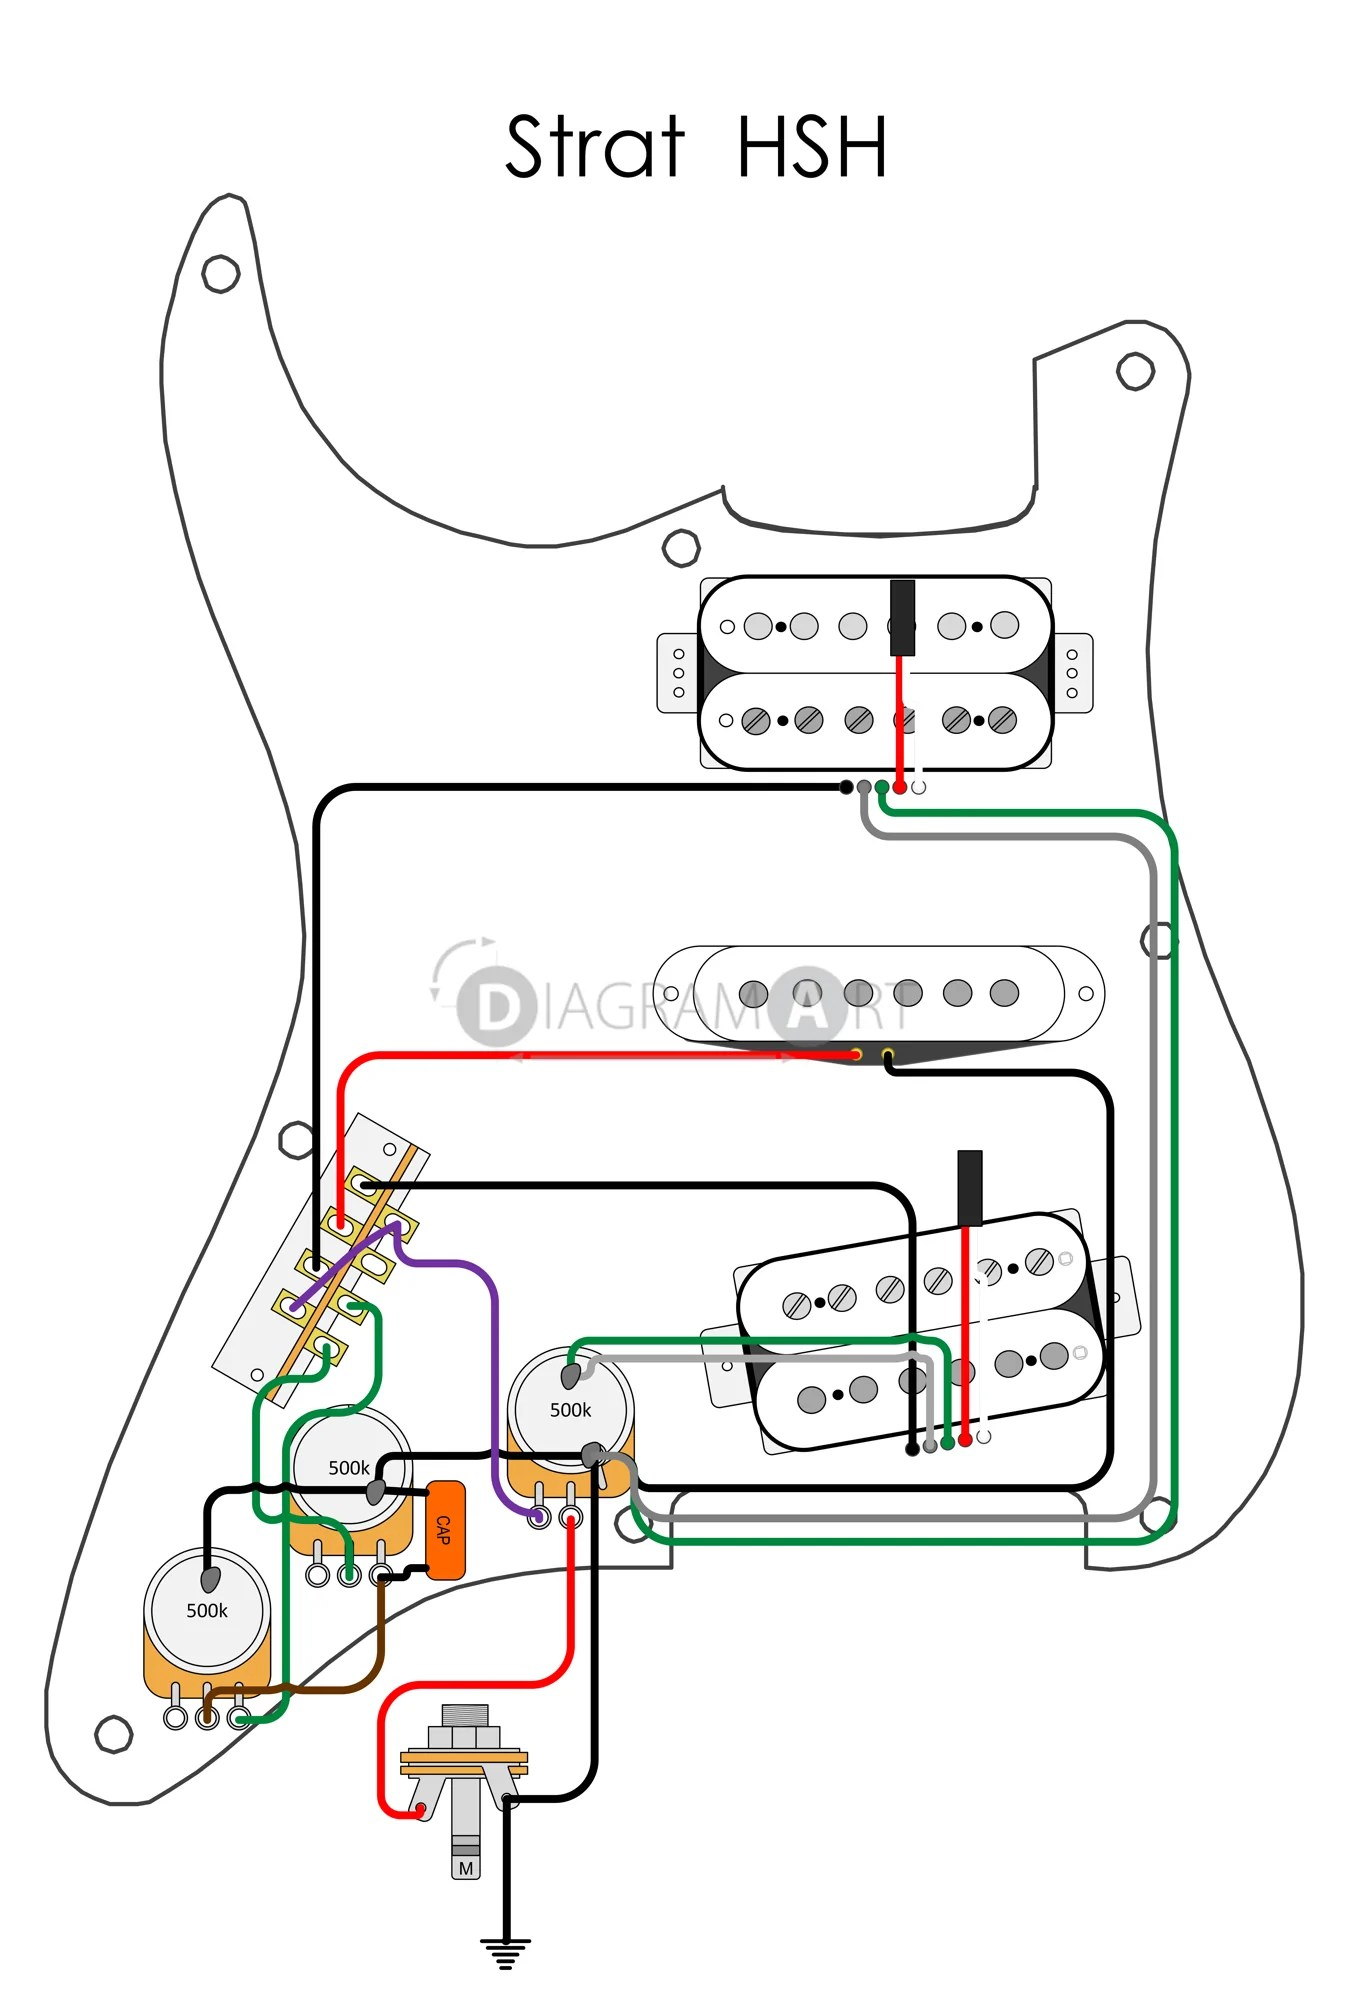 small resolution of free download guitar wiring diagrams diagram jem simple wiring schema car air horn wiring diagram guitar wiring diagram hsh